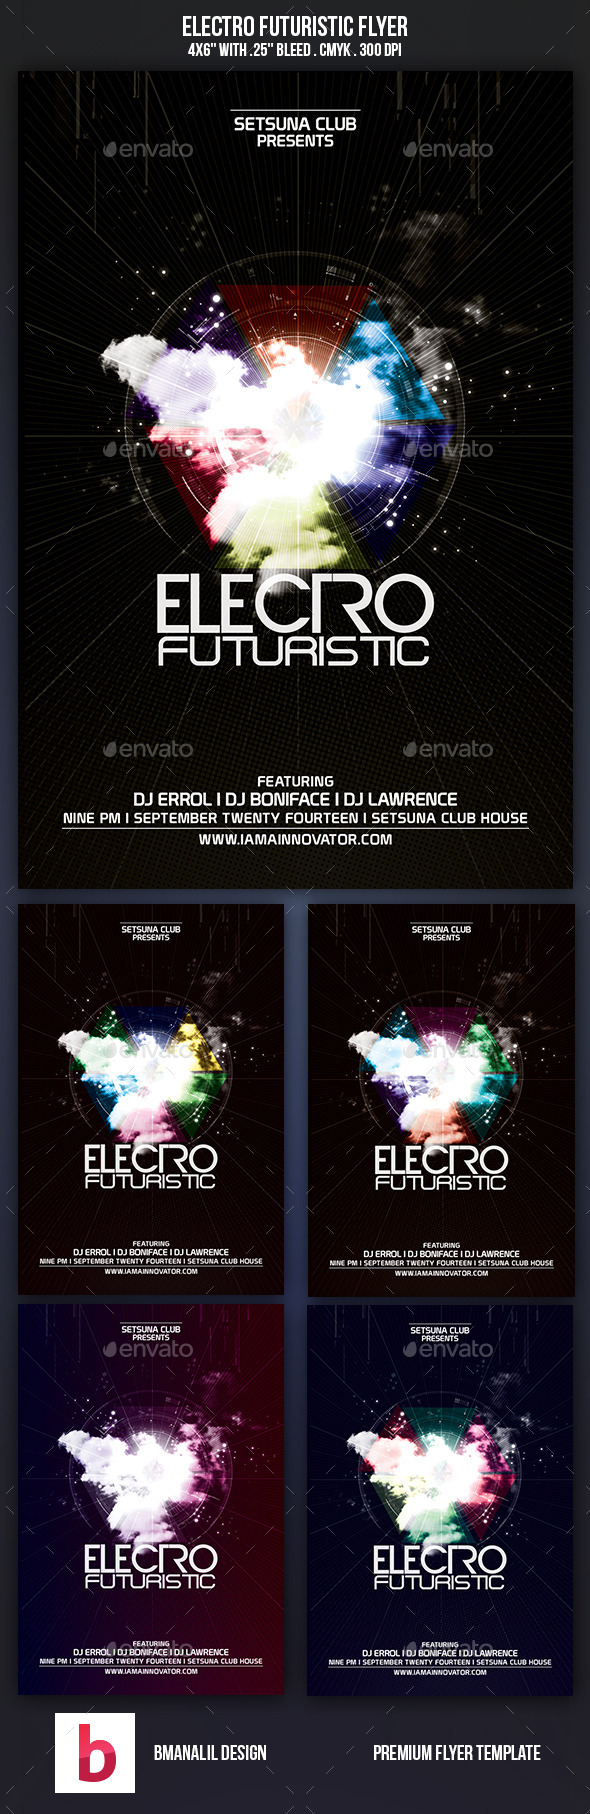 Electro Futuristic Flyer - Clubs & Parties Events